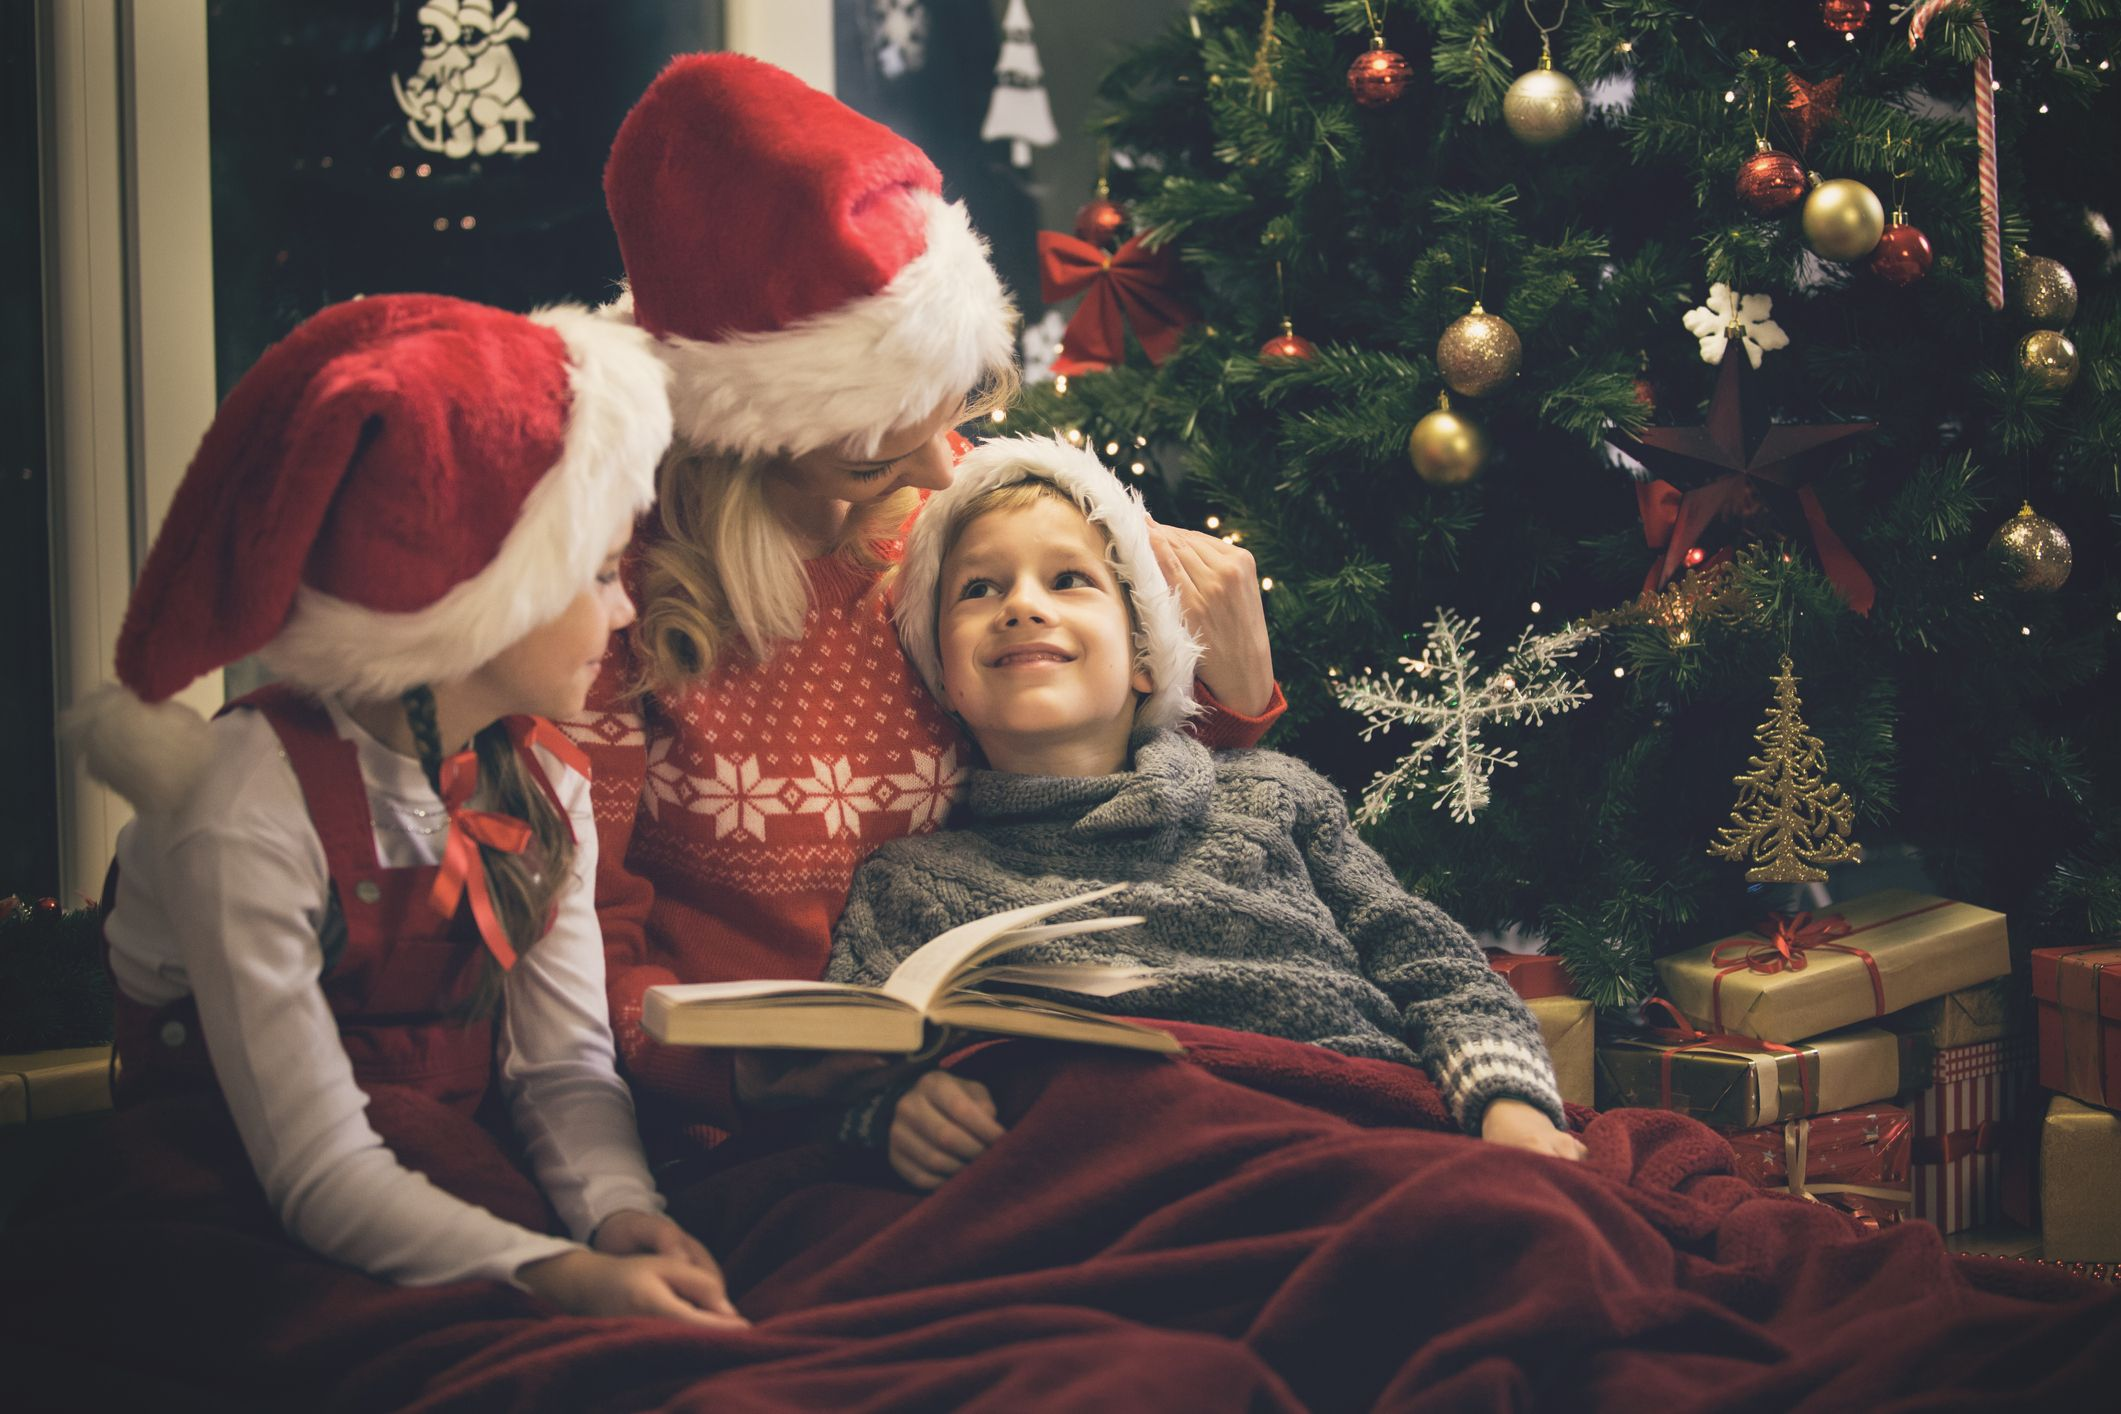 15 Best Christmas Poems for Kids to Make Them Even More Excited for the Season